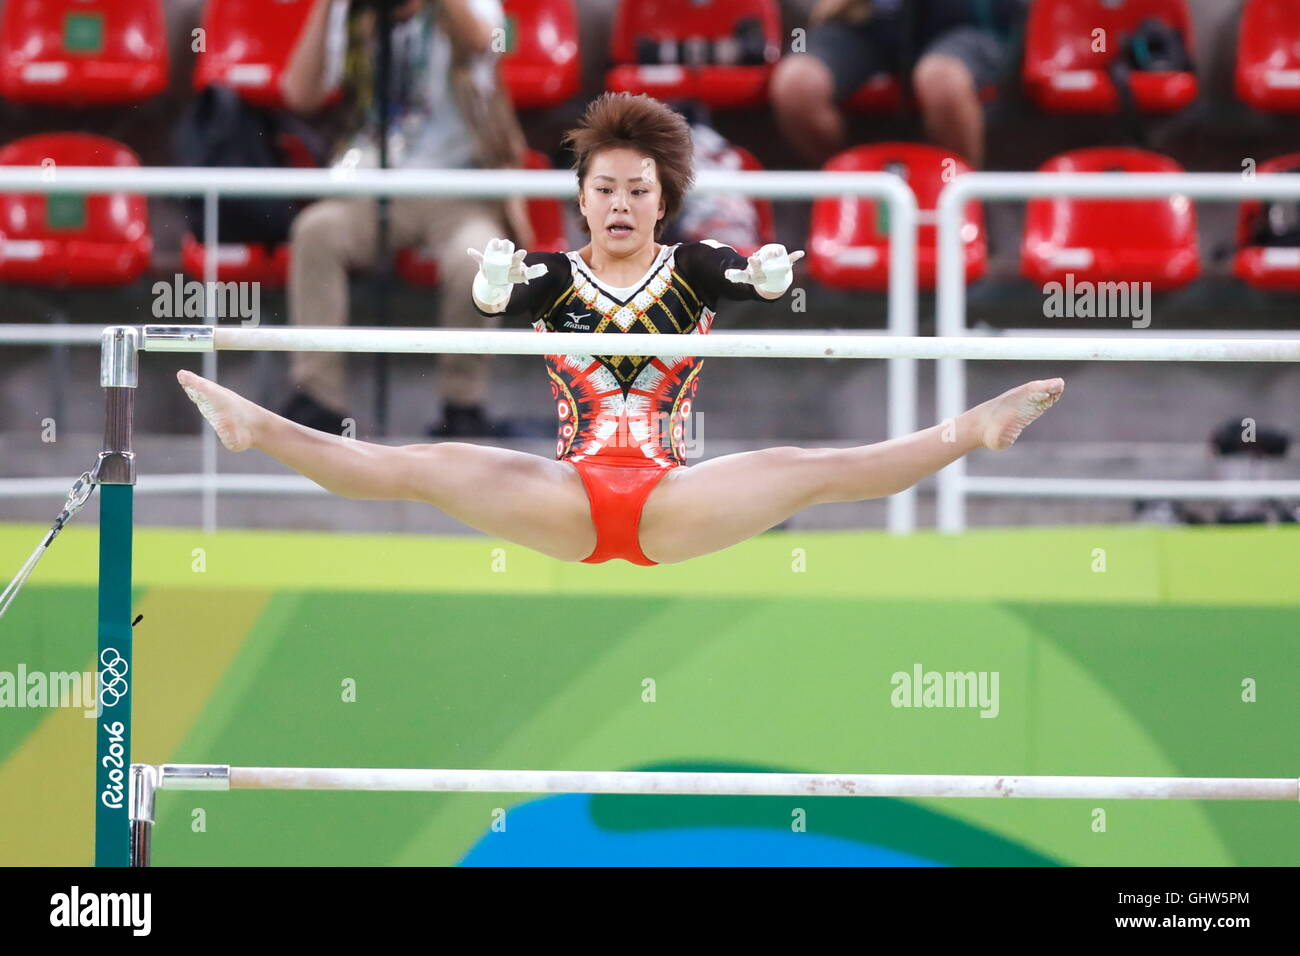 Rio de Janeiro, Brazil. 11th Aug, 2016. Mai Murakami (JPN) Artistic Gymnastics : Women's Individual All-Around - Stock Image